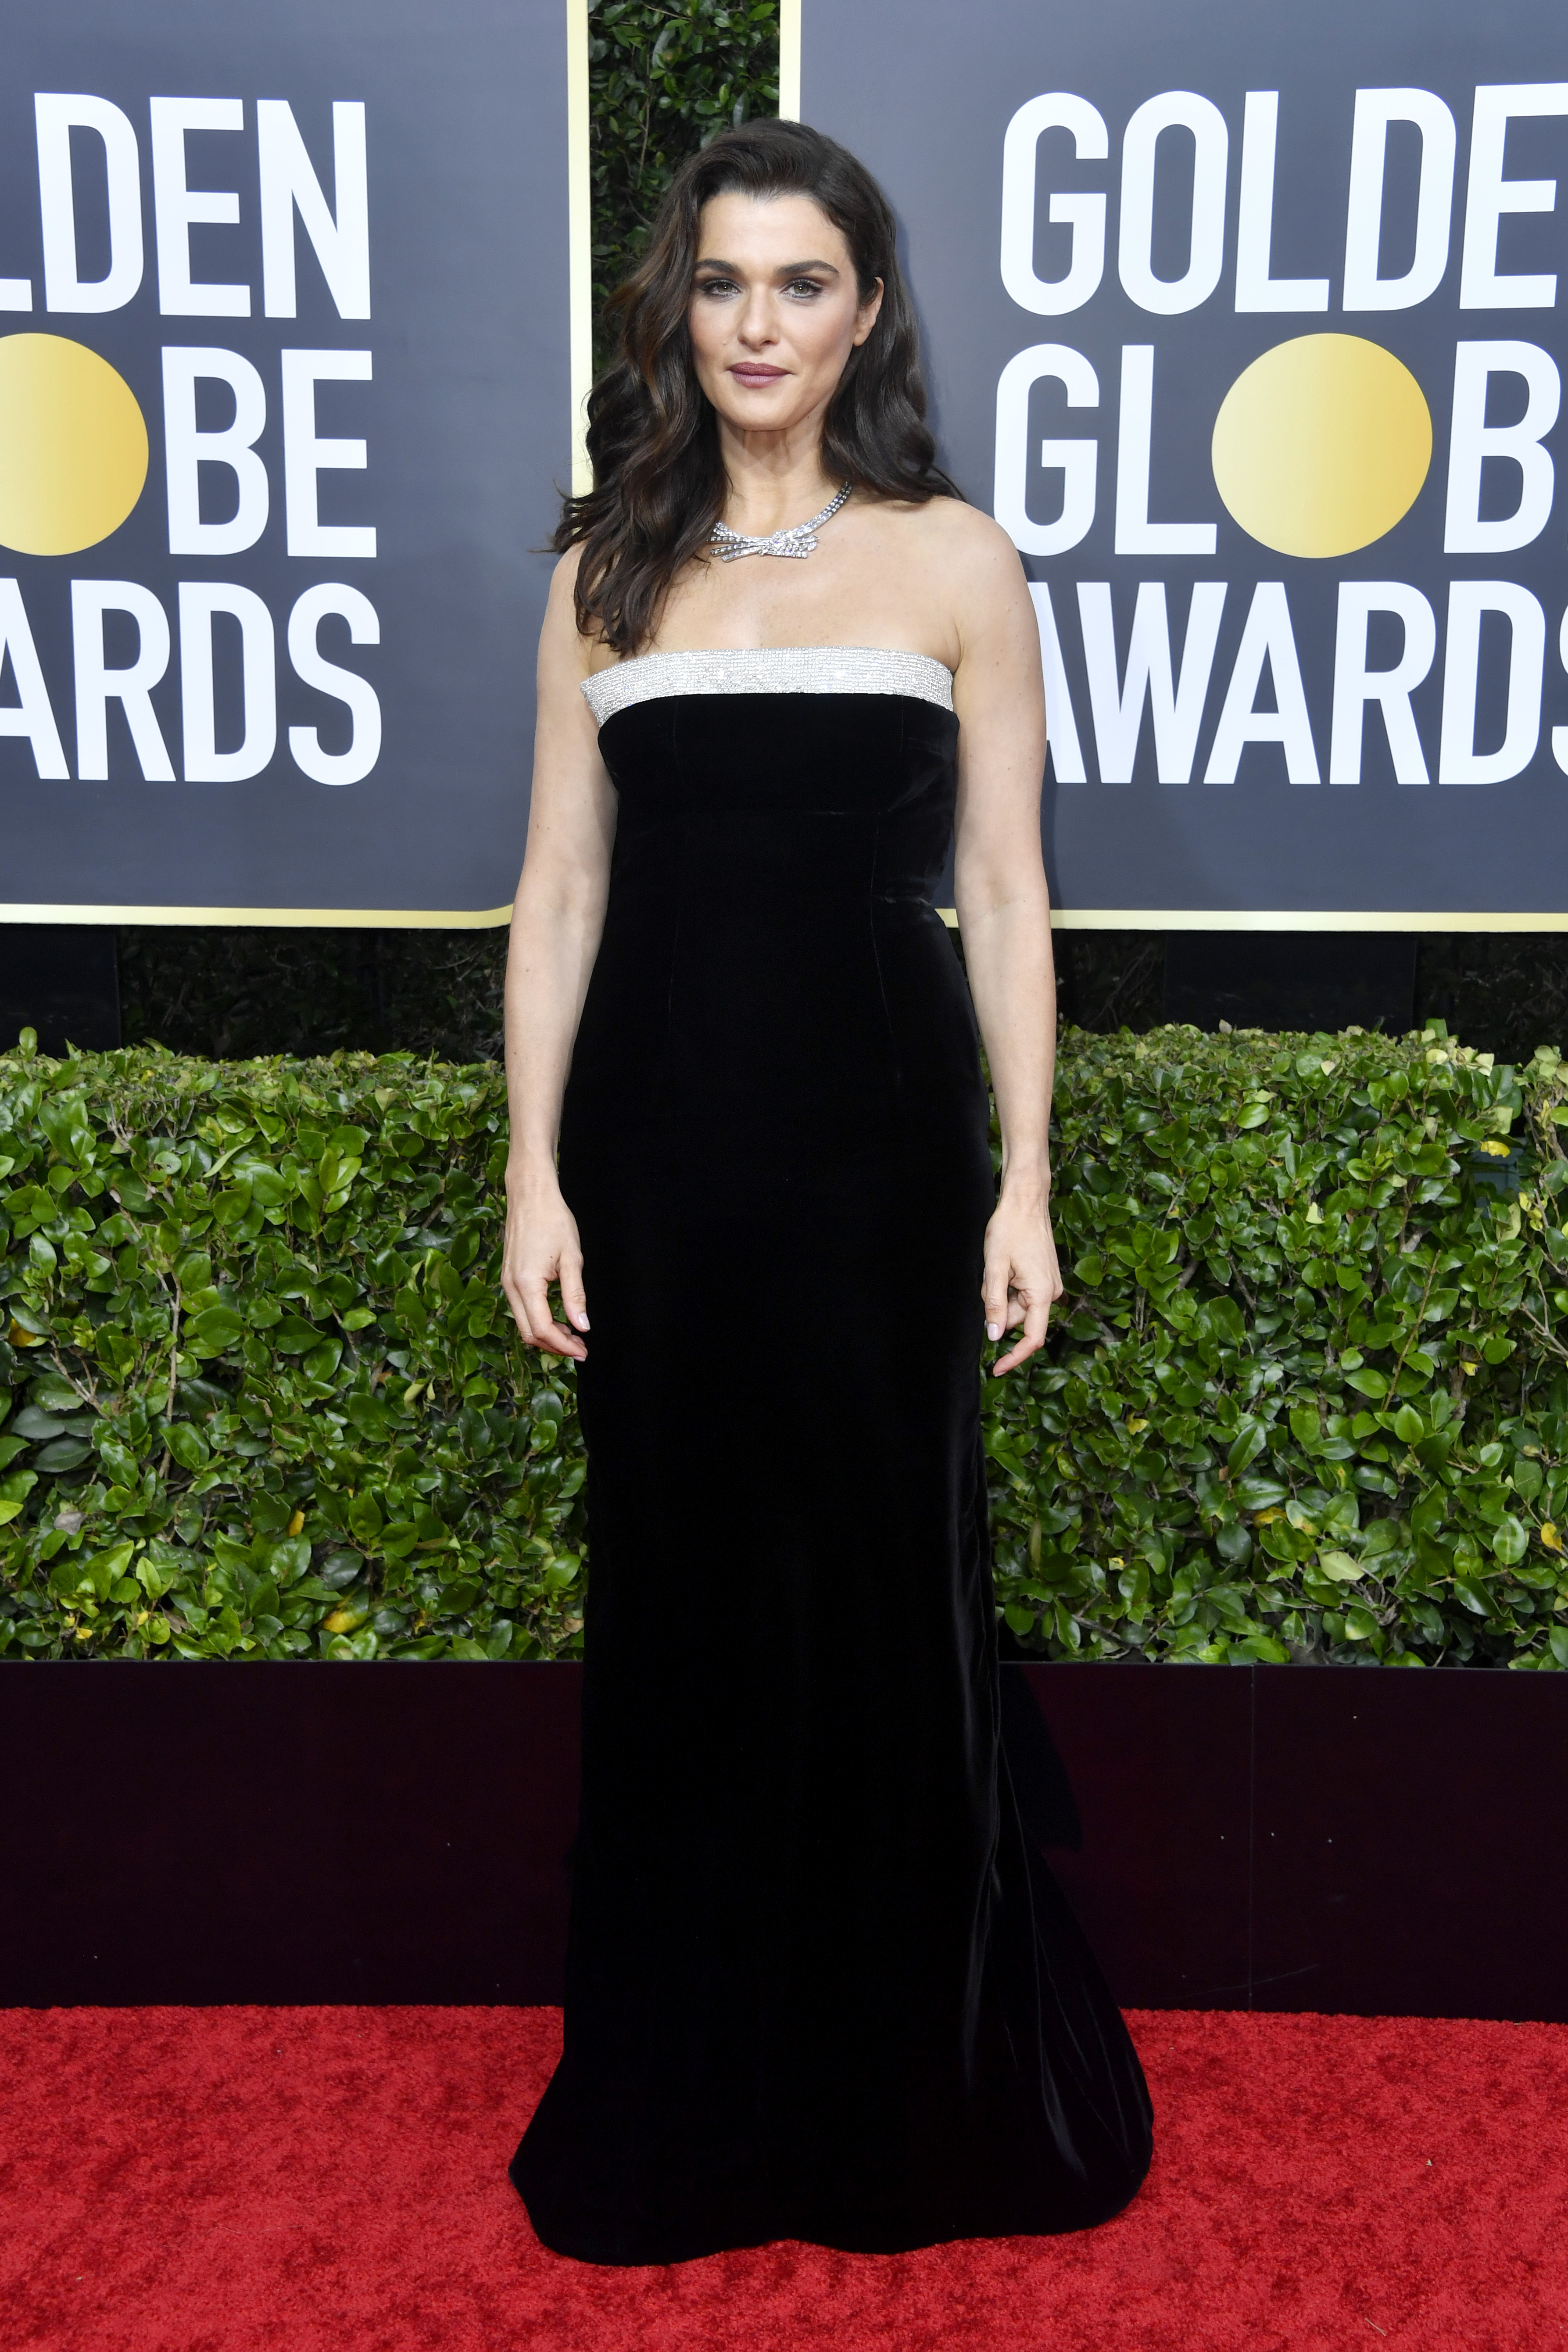 BEVERLY HILLS, CALIFORNIA - JANUARY 05: Rachel Weisz attends the 77th Annual Golden Globe Awards at The Beverly Hilton Hotel on January 05, 2020 in Beverly Hills, California. (Photo by Frazer Harrison/Getty Images)